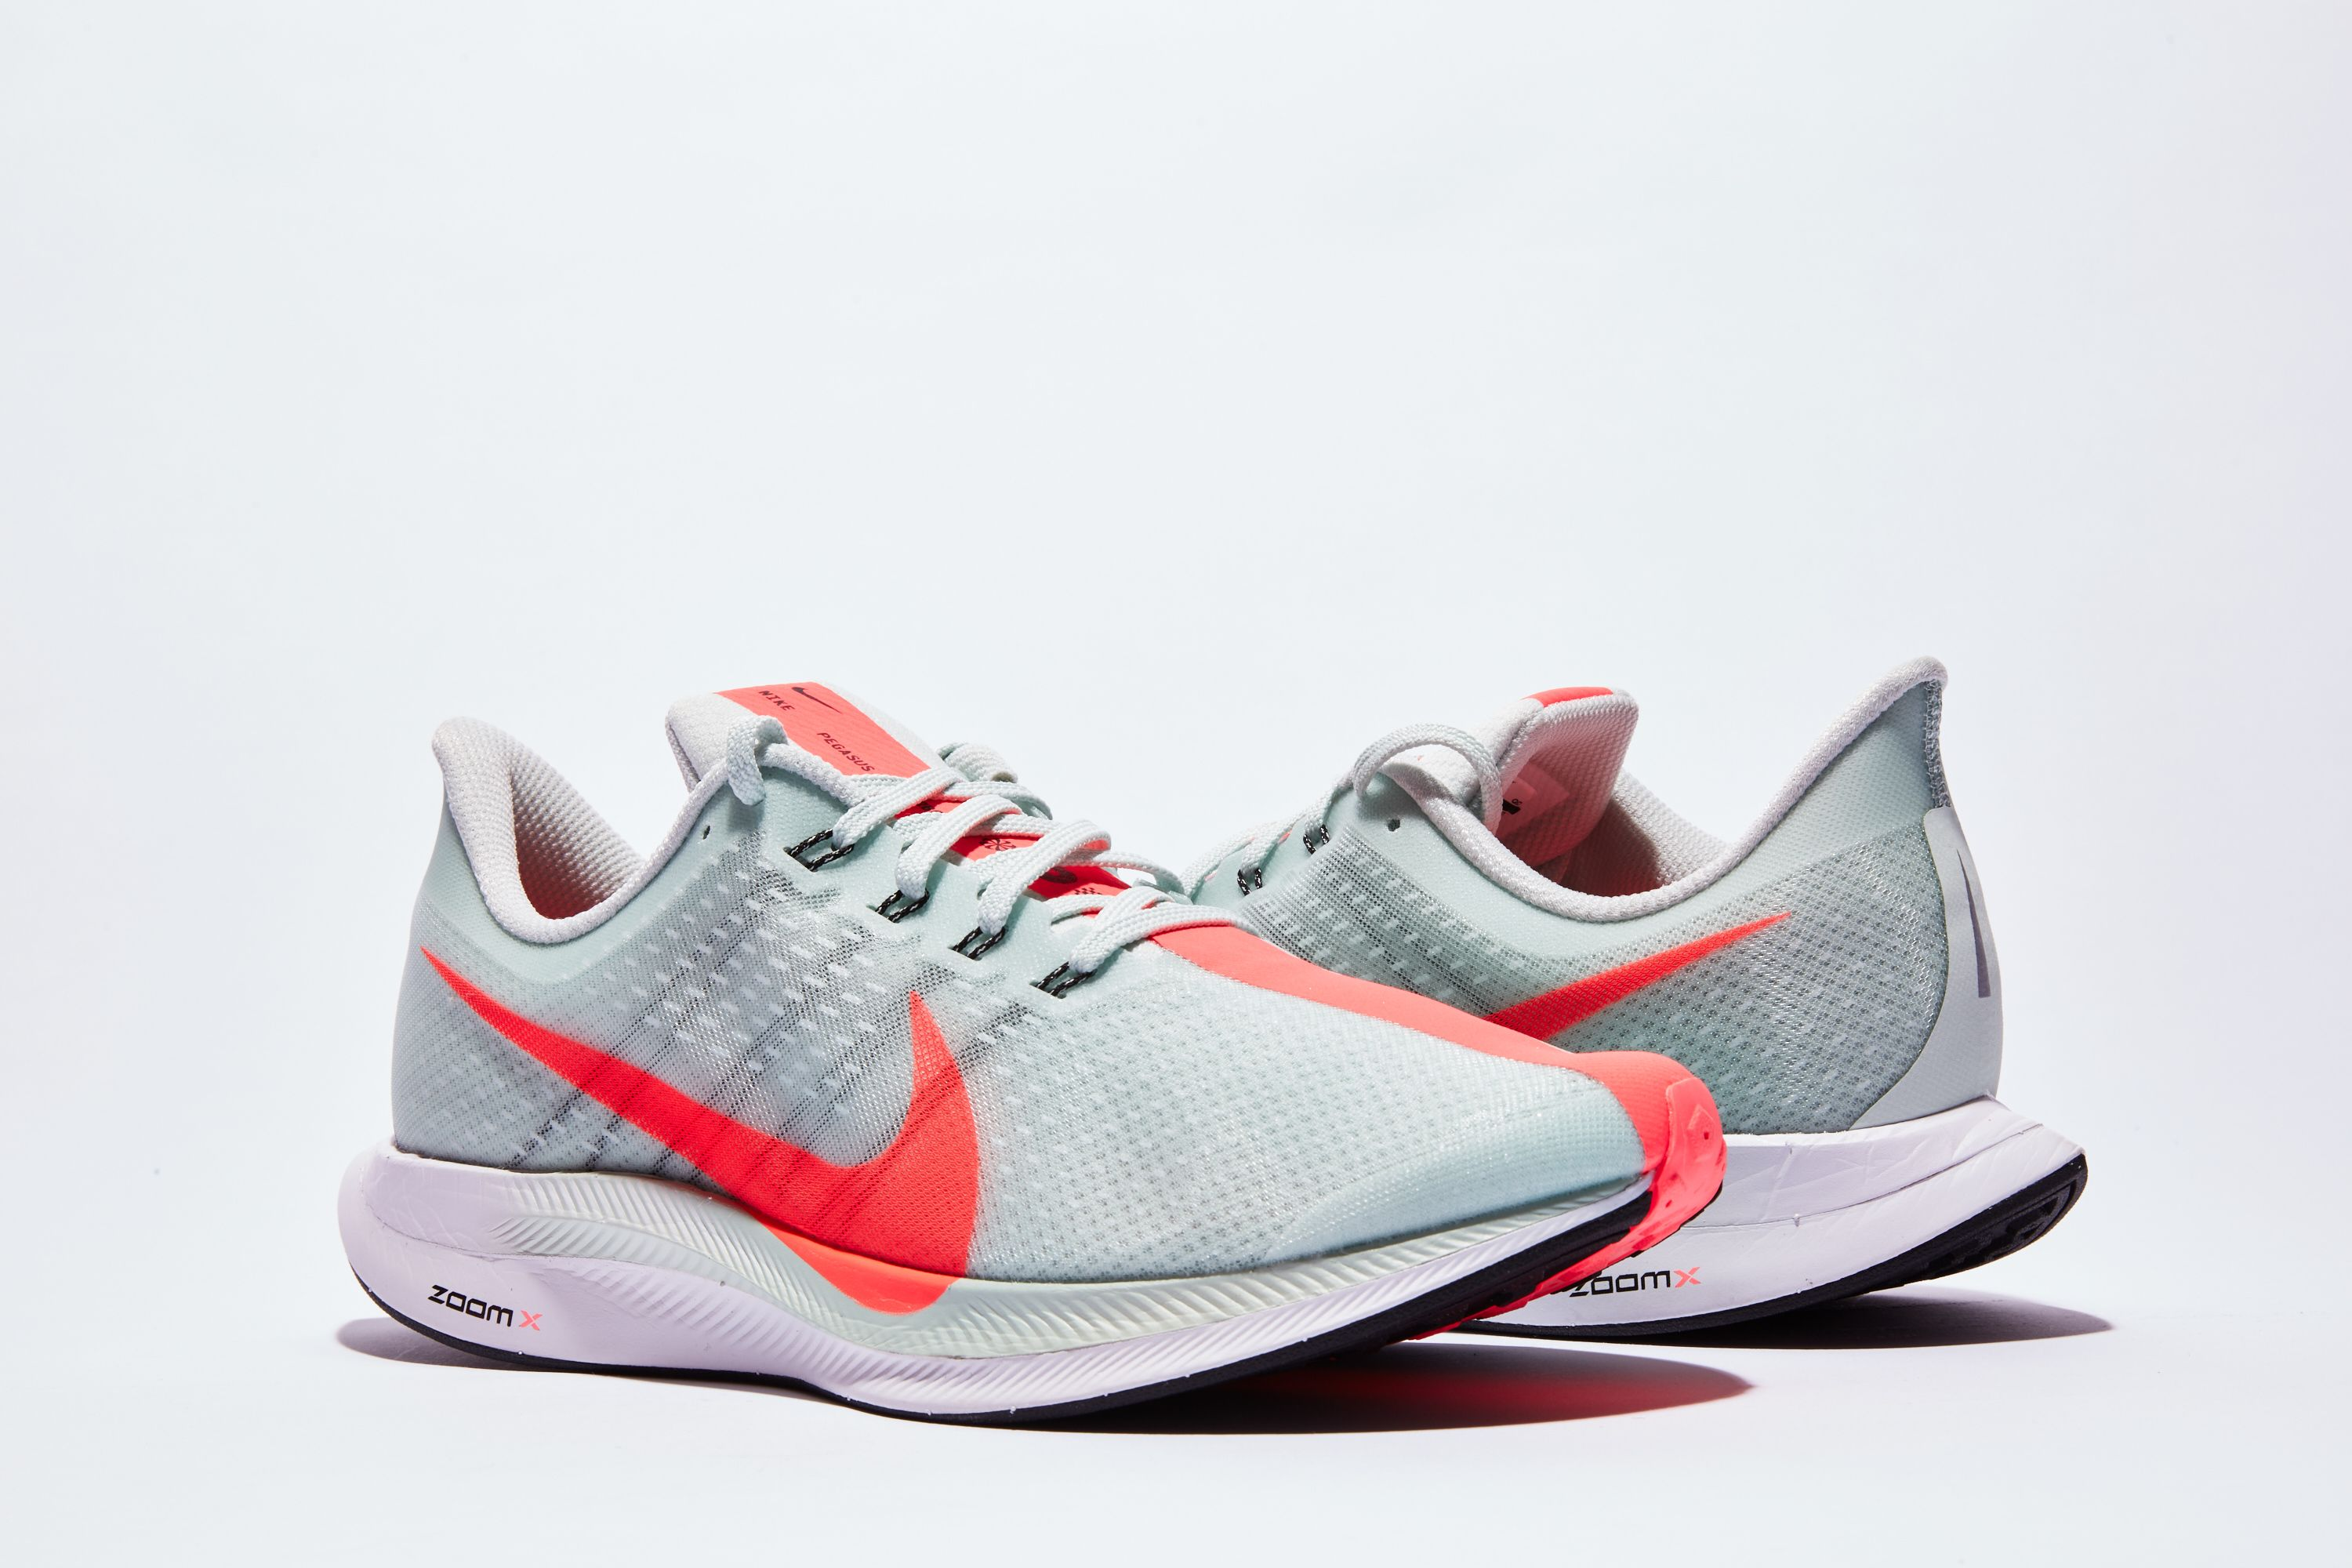 d90ea68e9d41a Nike Zoom Pegasus 35 Turbo - Running Shoes for Speed